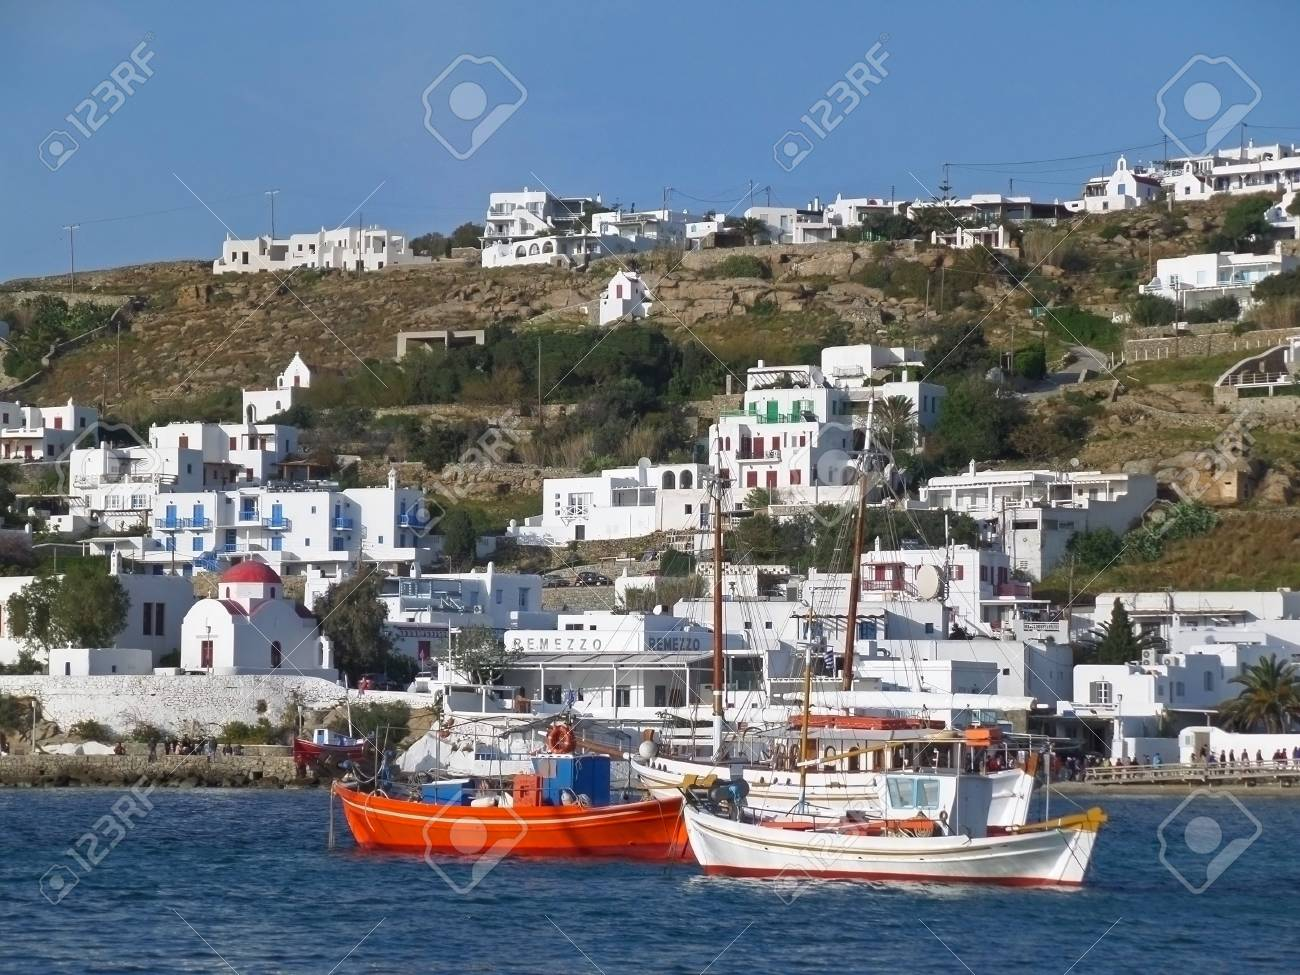 Stunning View Of The Old Port Of Mykonos  Mykonos Island  Greece     Stock Photo   Stunning view of the Old Port of Mykonos  Mykonos island   Greece